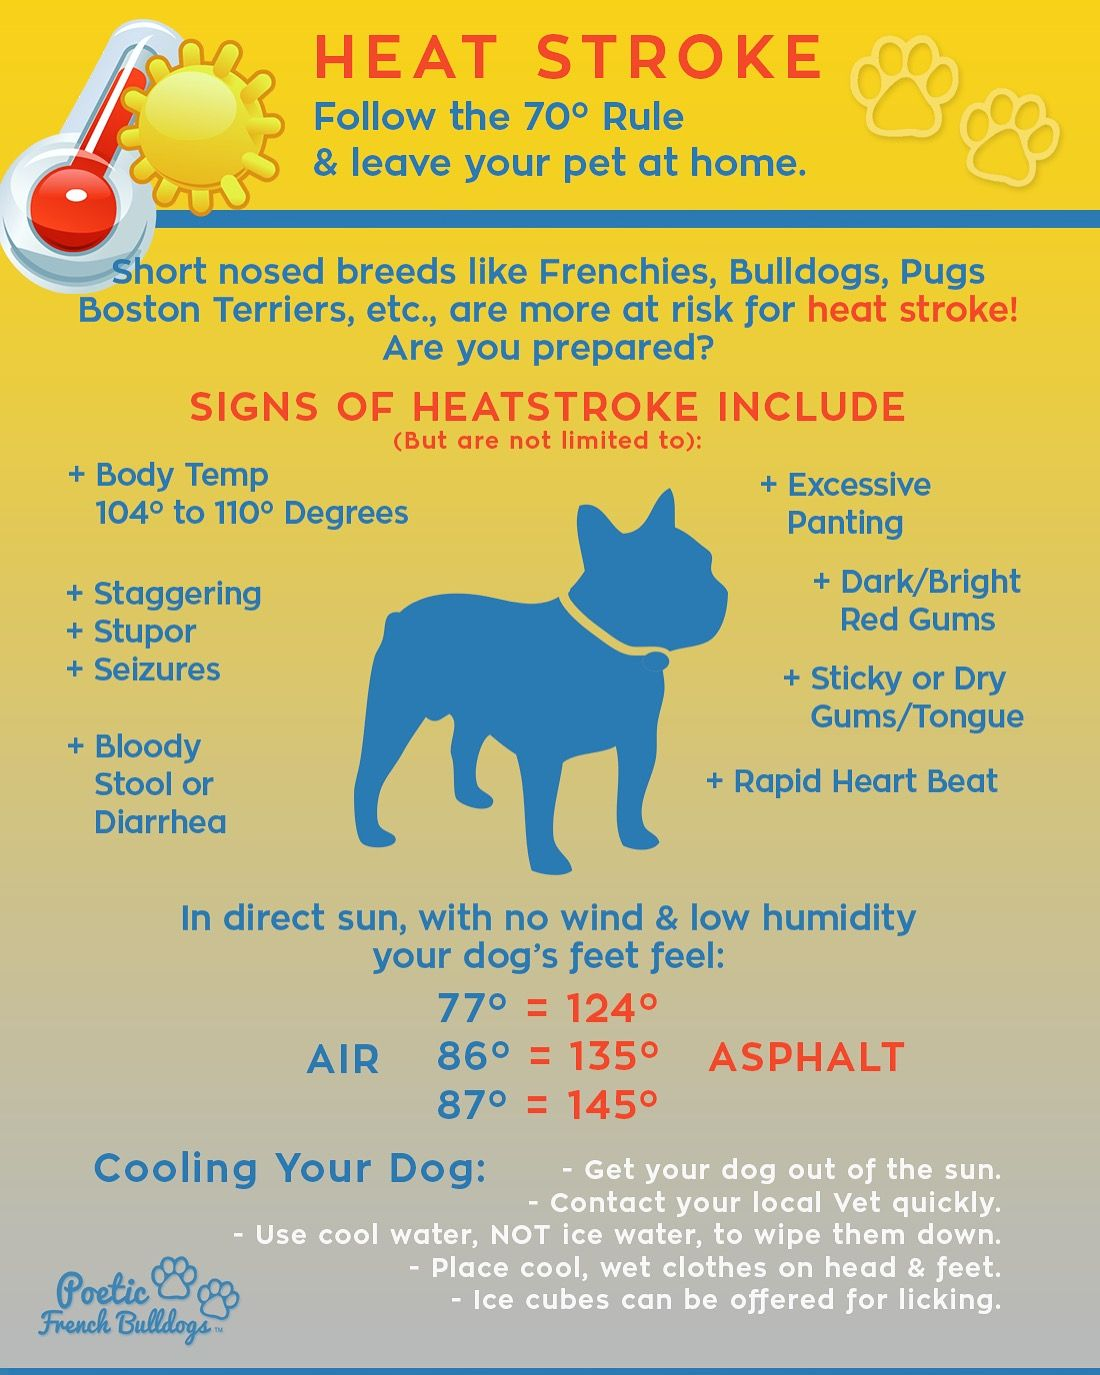 Heatstroke Info Please Repost For All Pet Owners To See